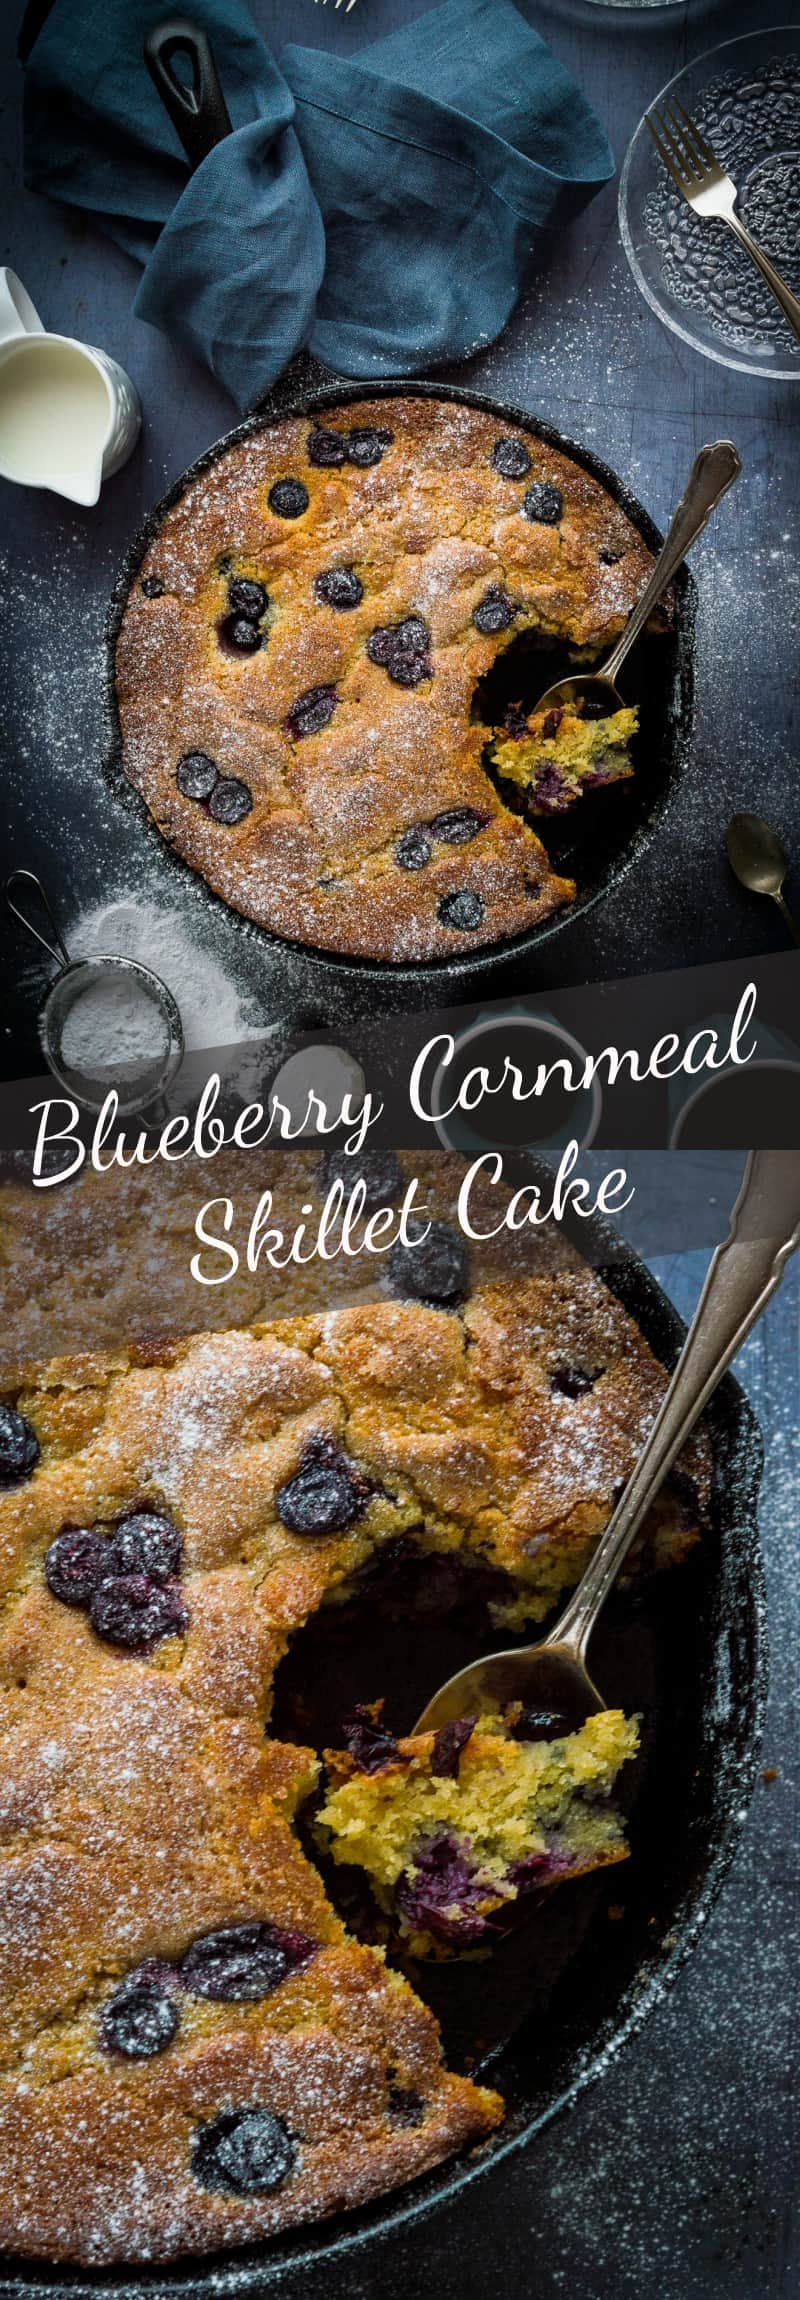 Blueberry cornmeal skillet cake - perfect as pudding, a snack or even for breakfast; this skillet cake is moist, buttery and incredibly moreish! #cake #baking #blueberries